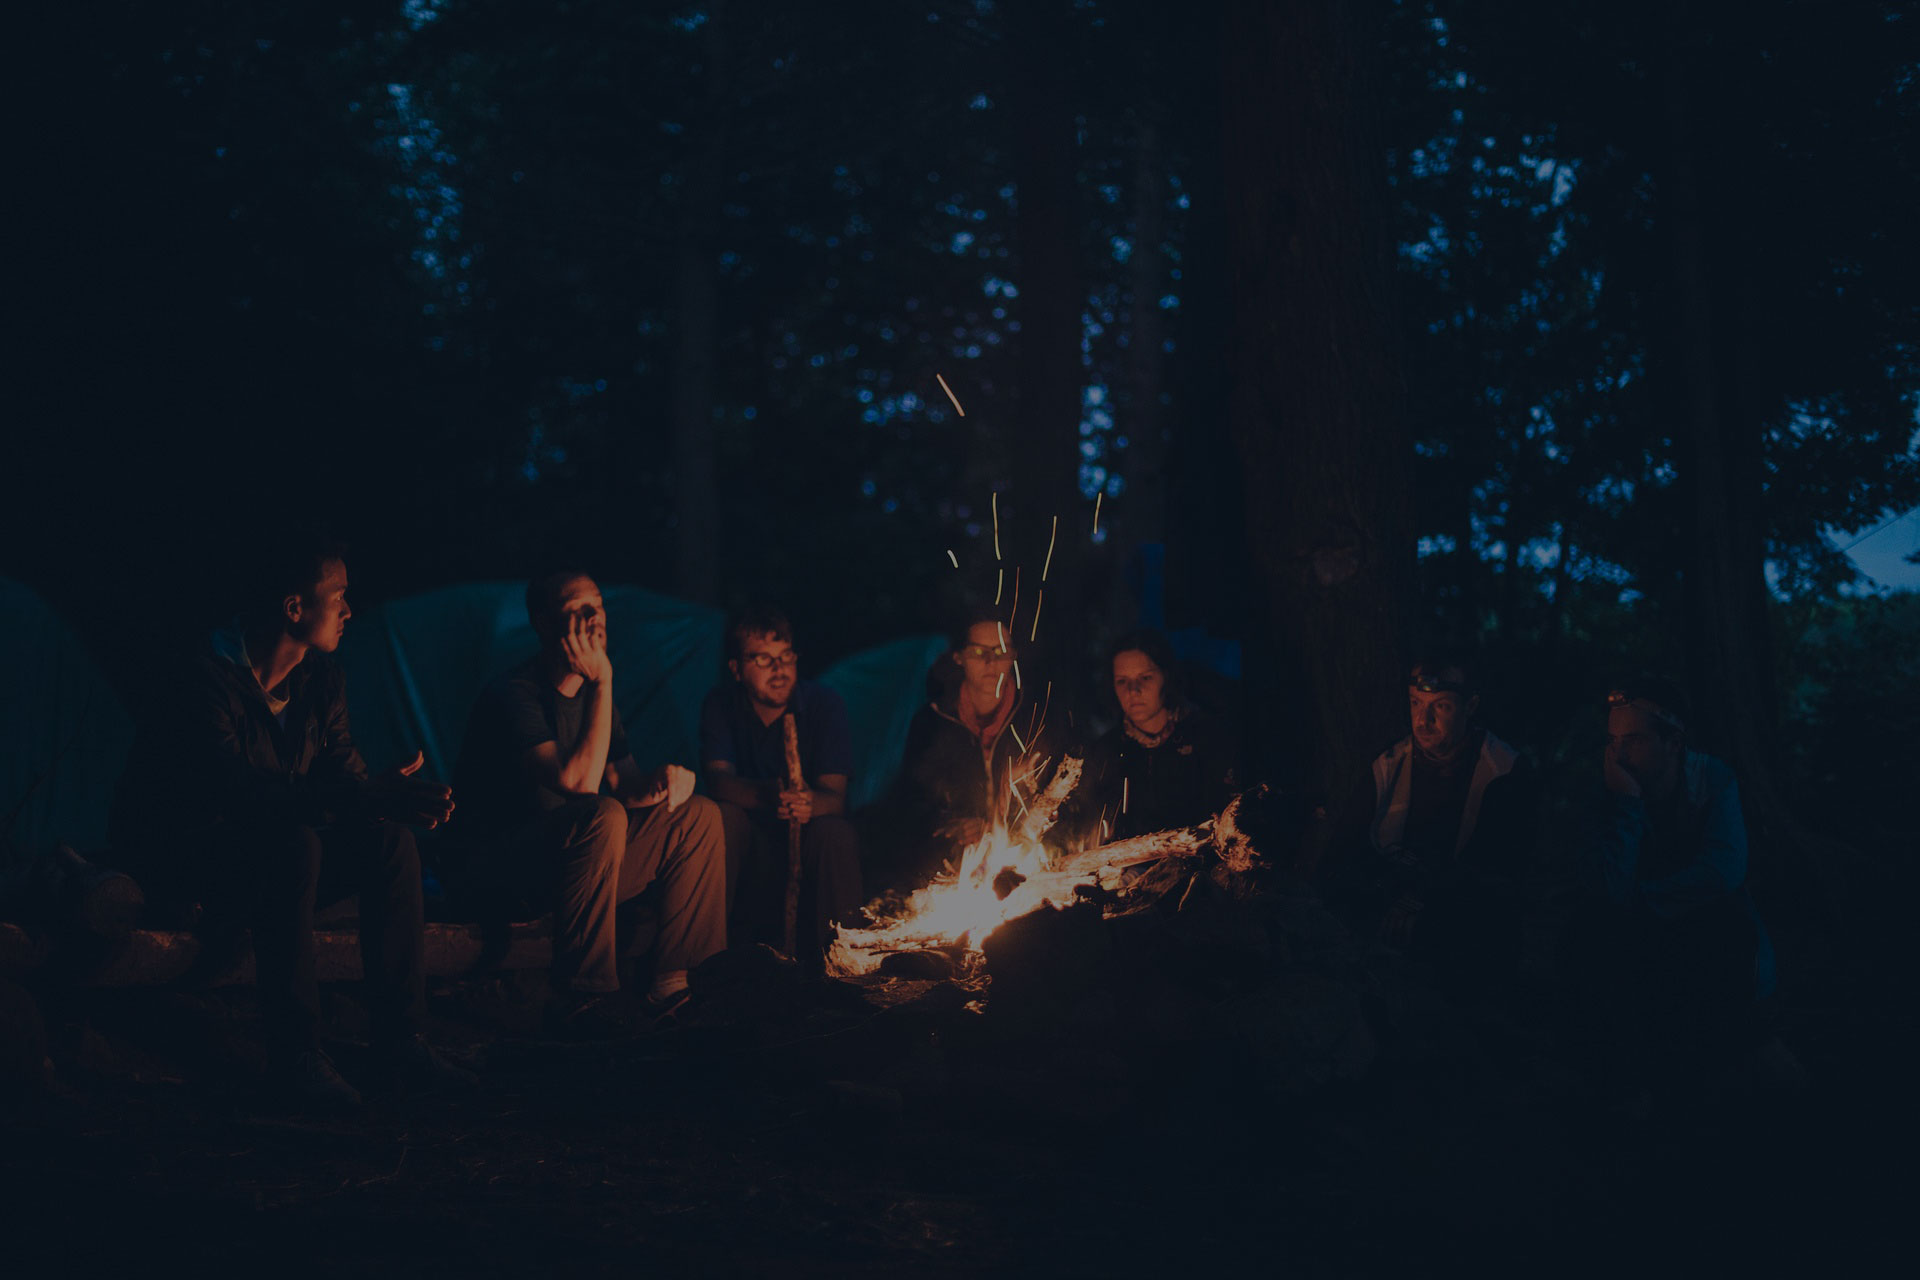 Group of backpackers relaxing near campfire after a hard day